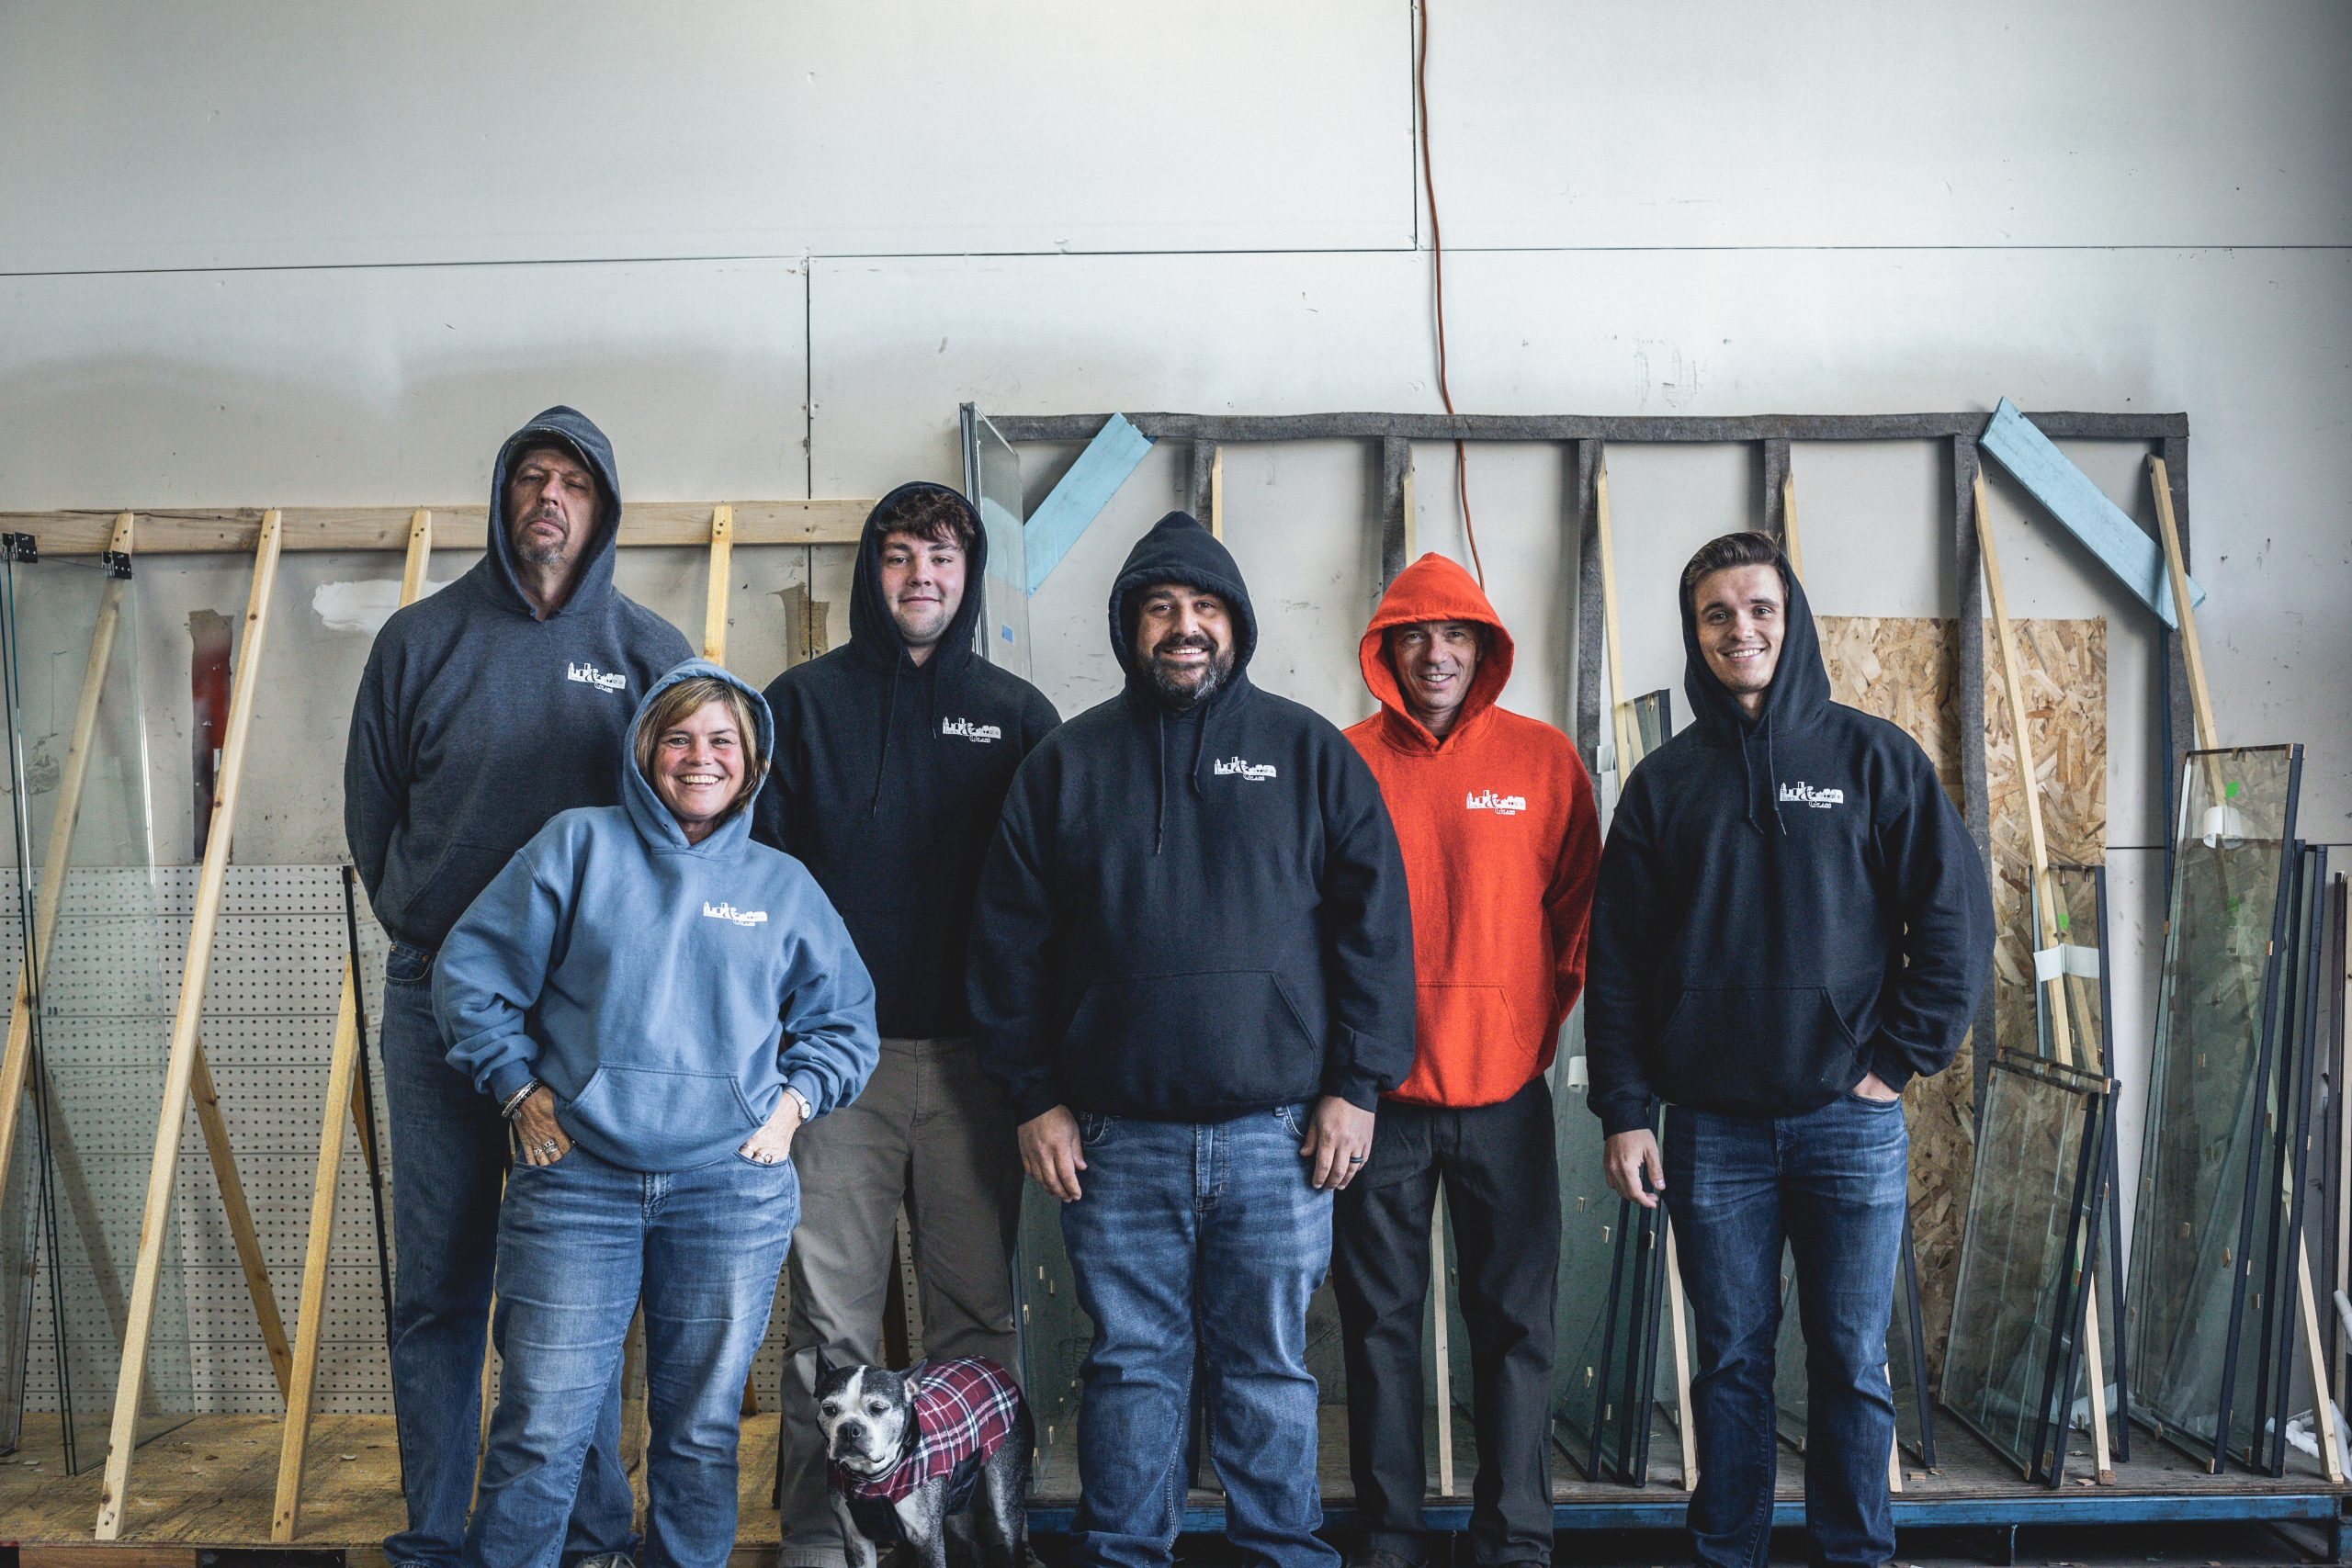 The Hillsboro window screen repair crew at T&C Glass